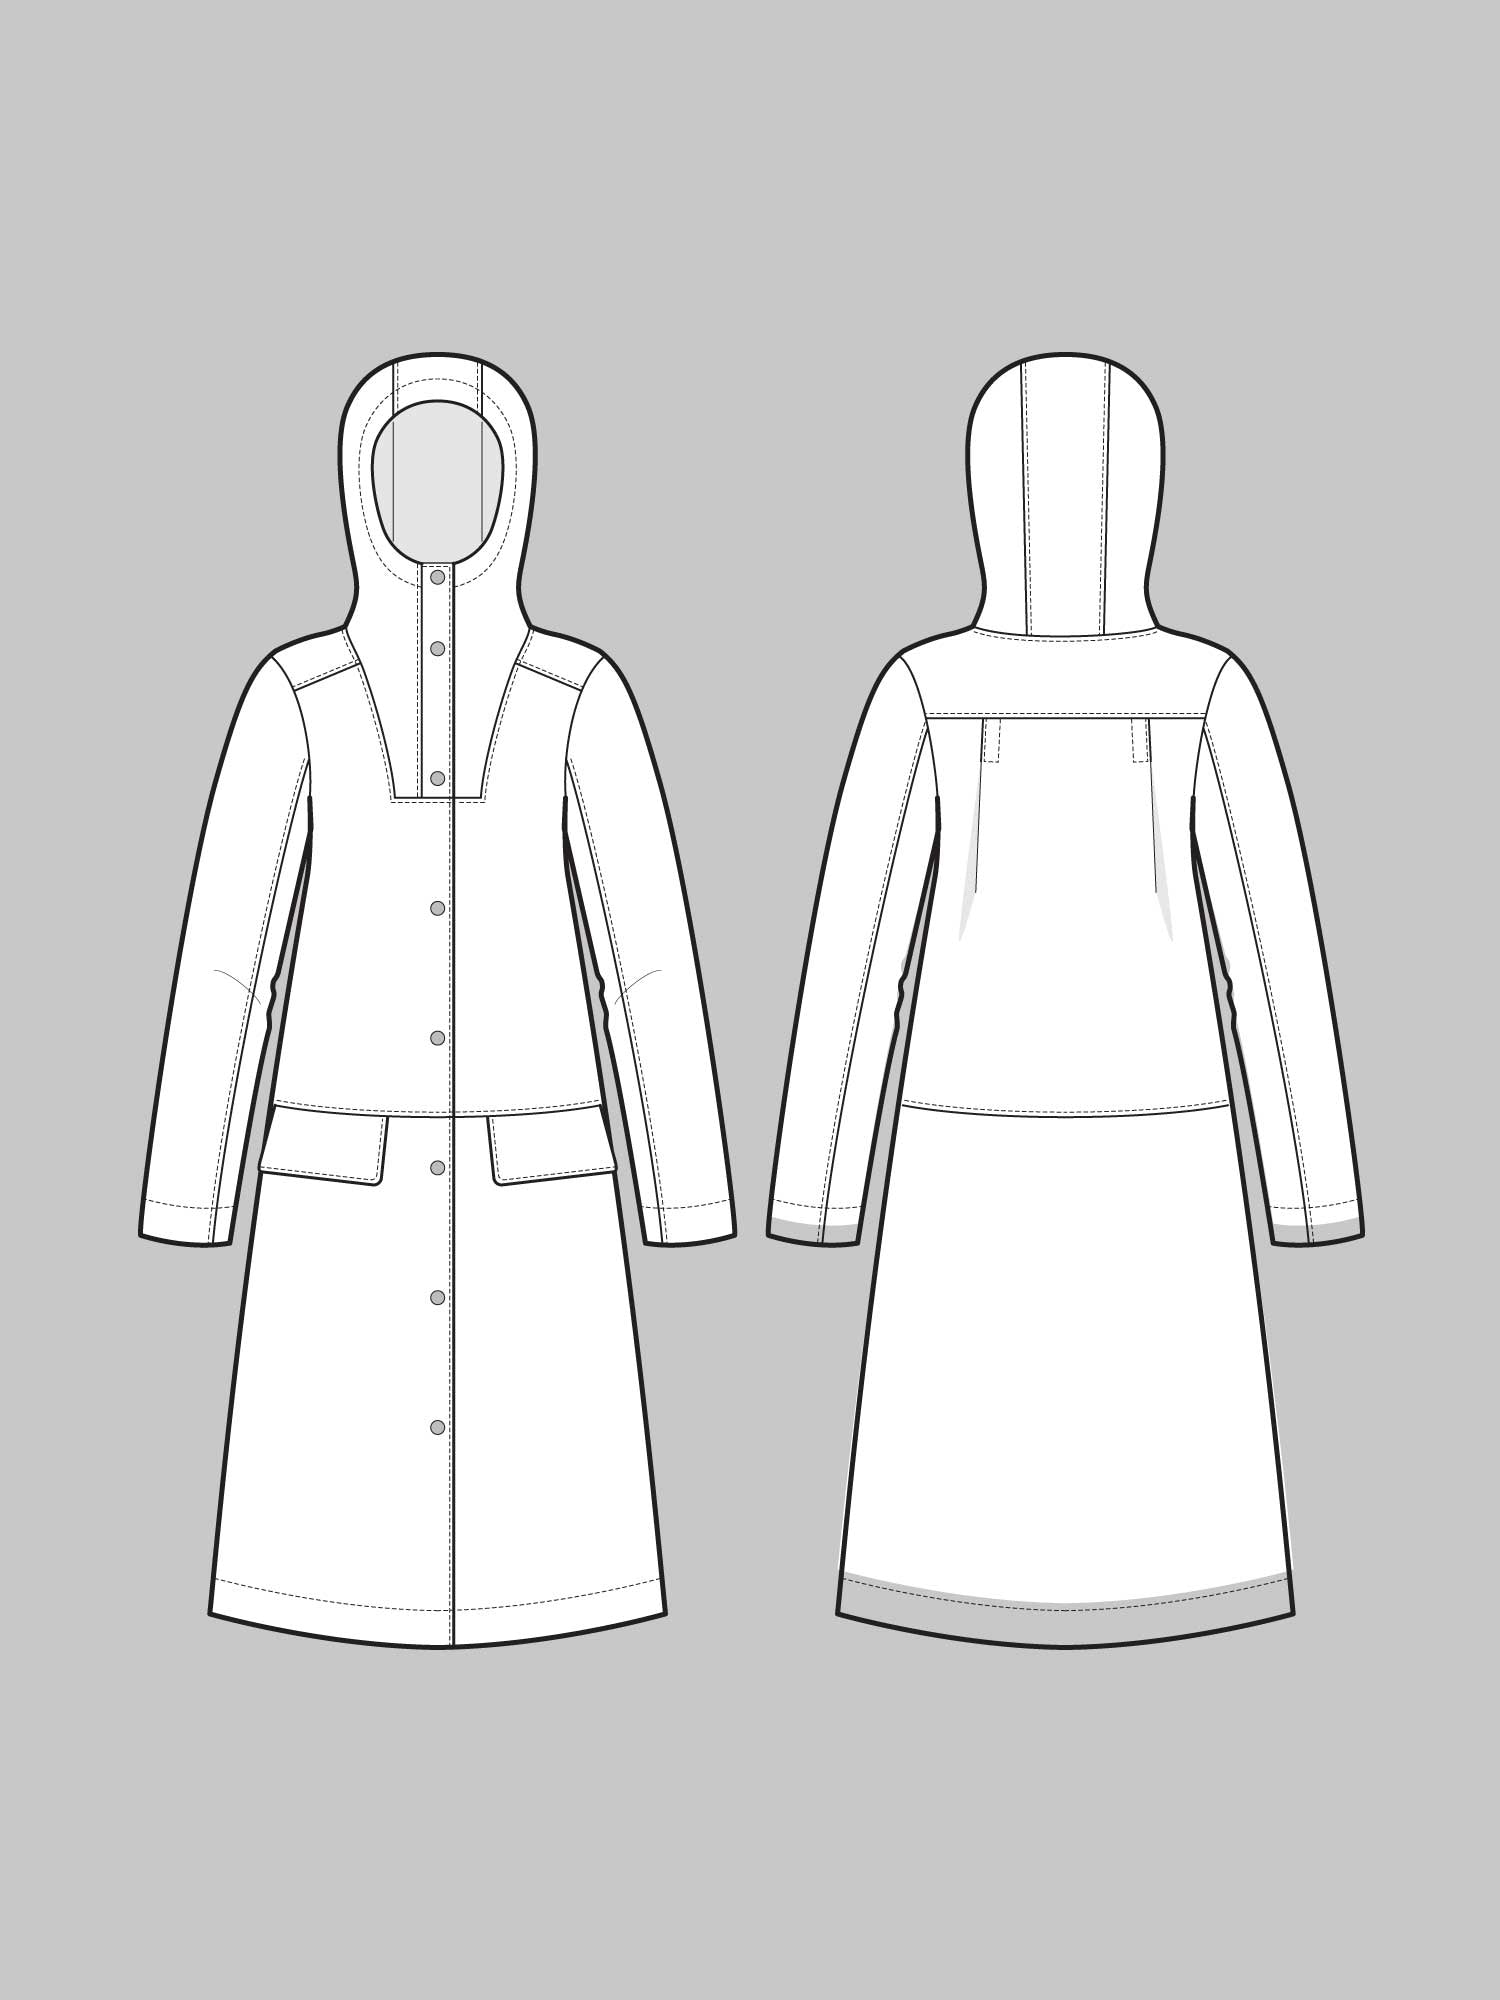 THE ASSEMBLY LINE • Hoodie Parka Sewing Pattern – The Draper\'s Daughter